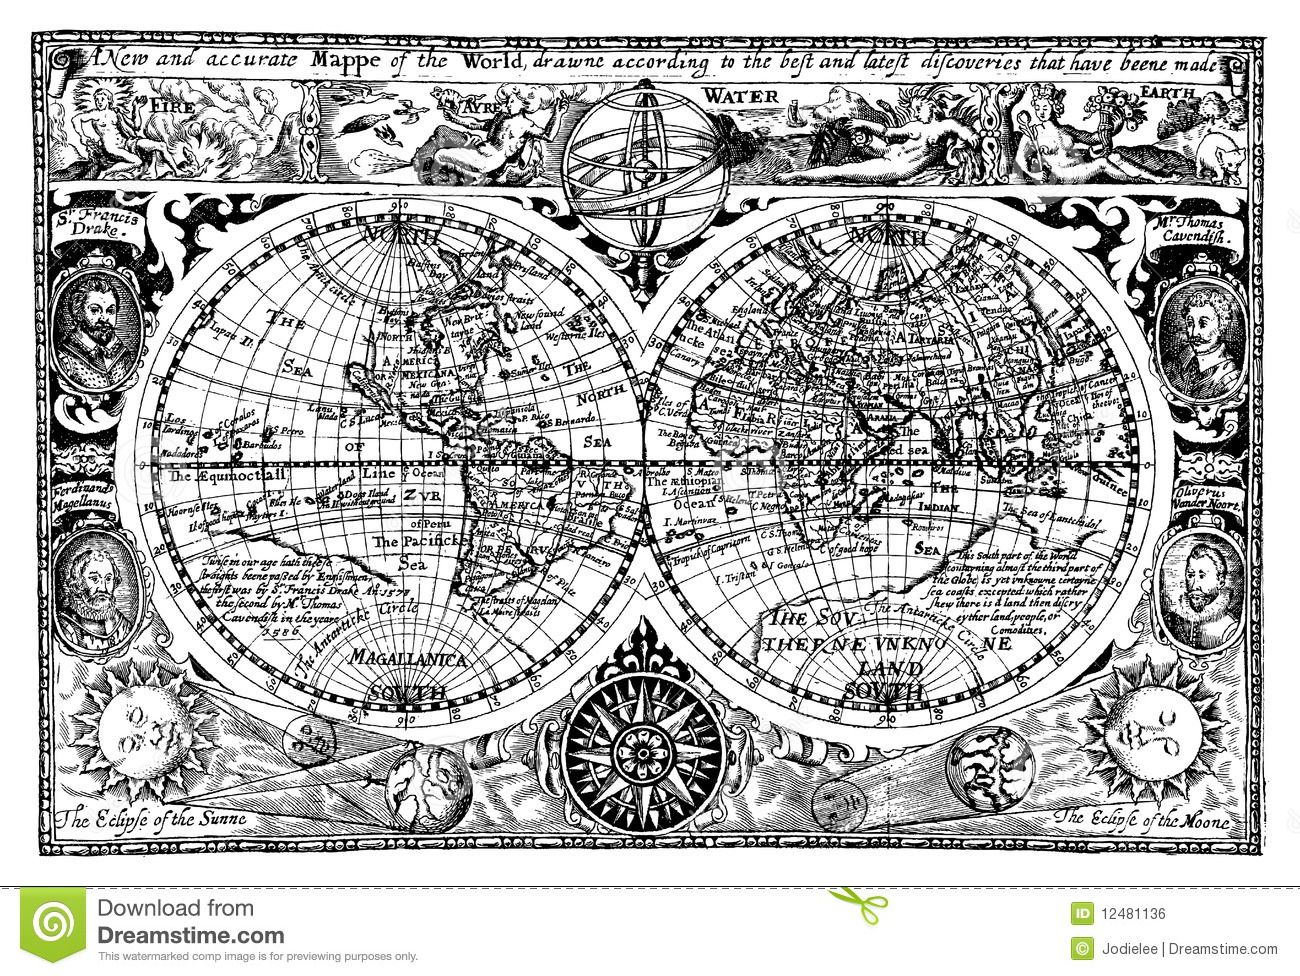 Vector Illustration Antique World Map Stock Vector - Illustration of on old map sea monsters, old world maps framed, ancient beasts and monsters, antique nautical monsters, maps with sea monsters, see monsters, old world maps with mermaids, nice silly sea monsters, old maps of the world, map of us monsters, old world map with countries, here there be monsters, old world maps murals, old world explorer maps, old world maps printable, old japanese monsters, ancient sea monsters, vintage maritime sea monsters, old nautical maps,